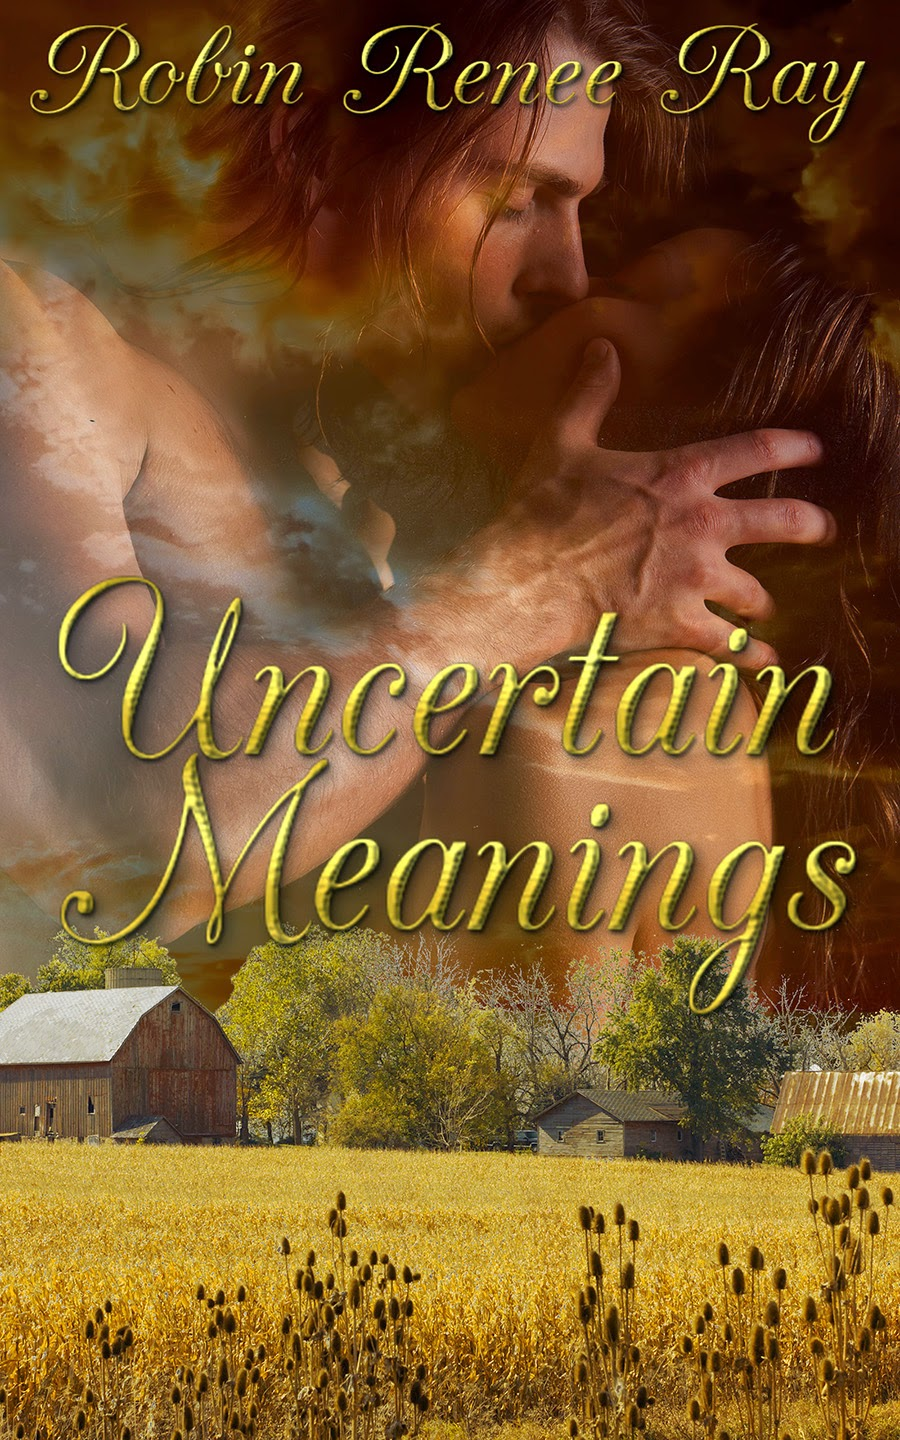 http://www.amazon.com/Uncertain-Meanings-Robin-Renee-Ray-ebook/dp/B00DV70V7G/ref=sr_1_5?s=digital-text&ie=UTF8&qid=1422825984&sr=1-5